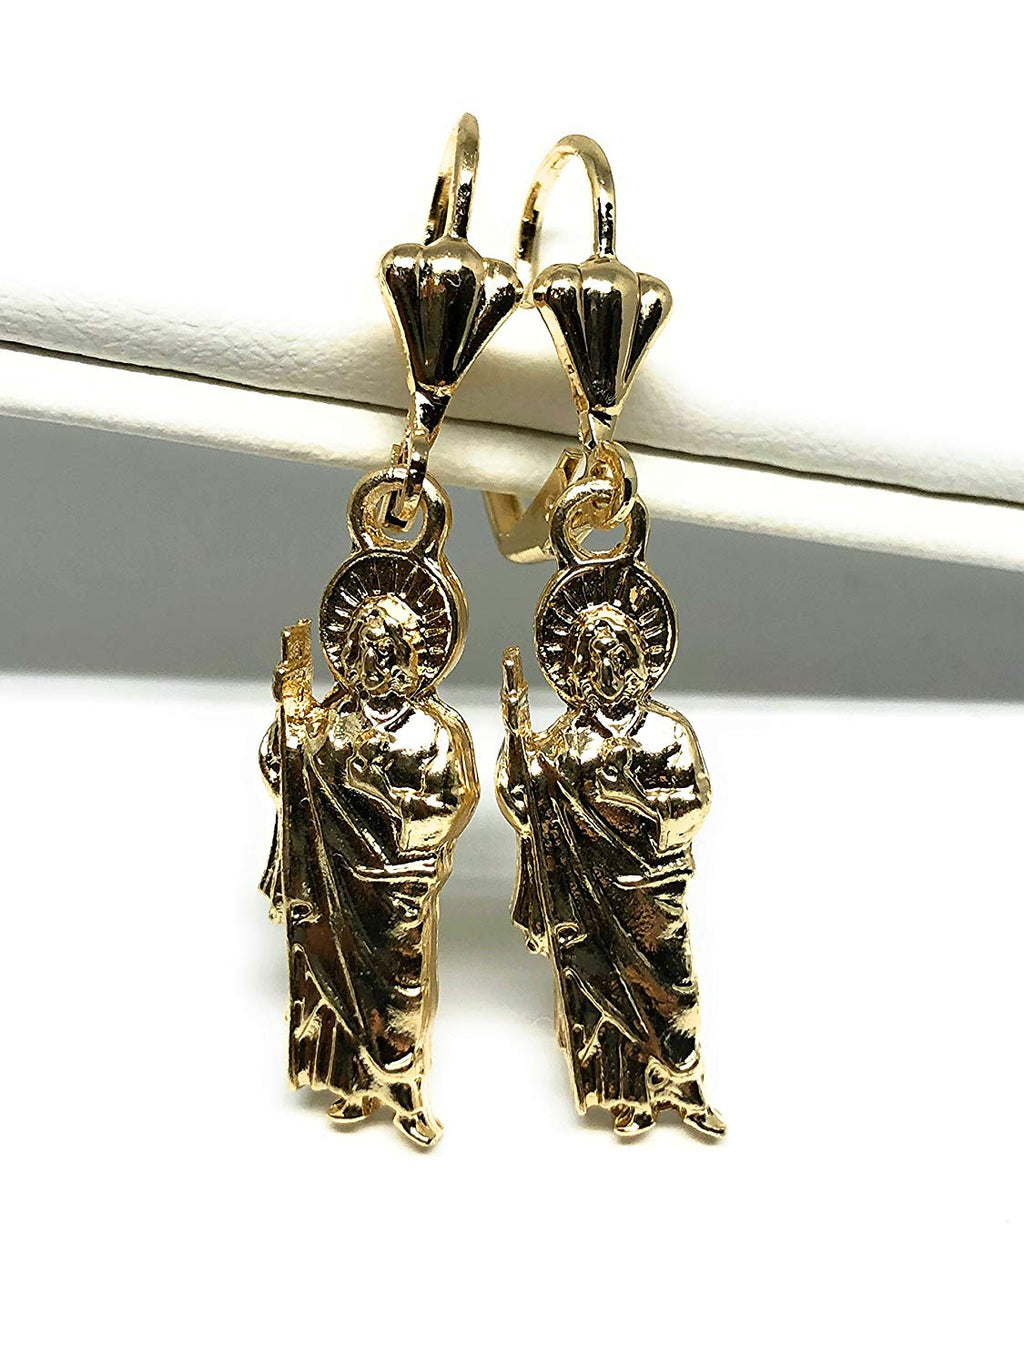 Gold Plated Saint Jude Earrings Aretes De San Judas Tadeo Oro Laminado - Fran & Co. Jewelry